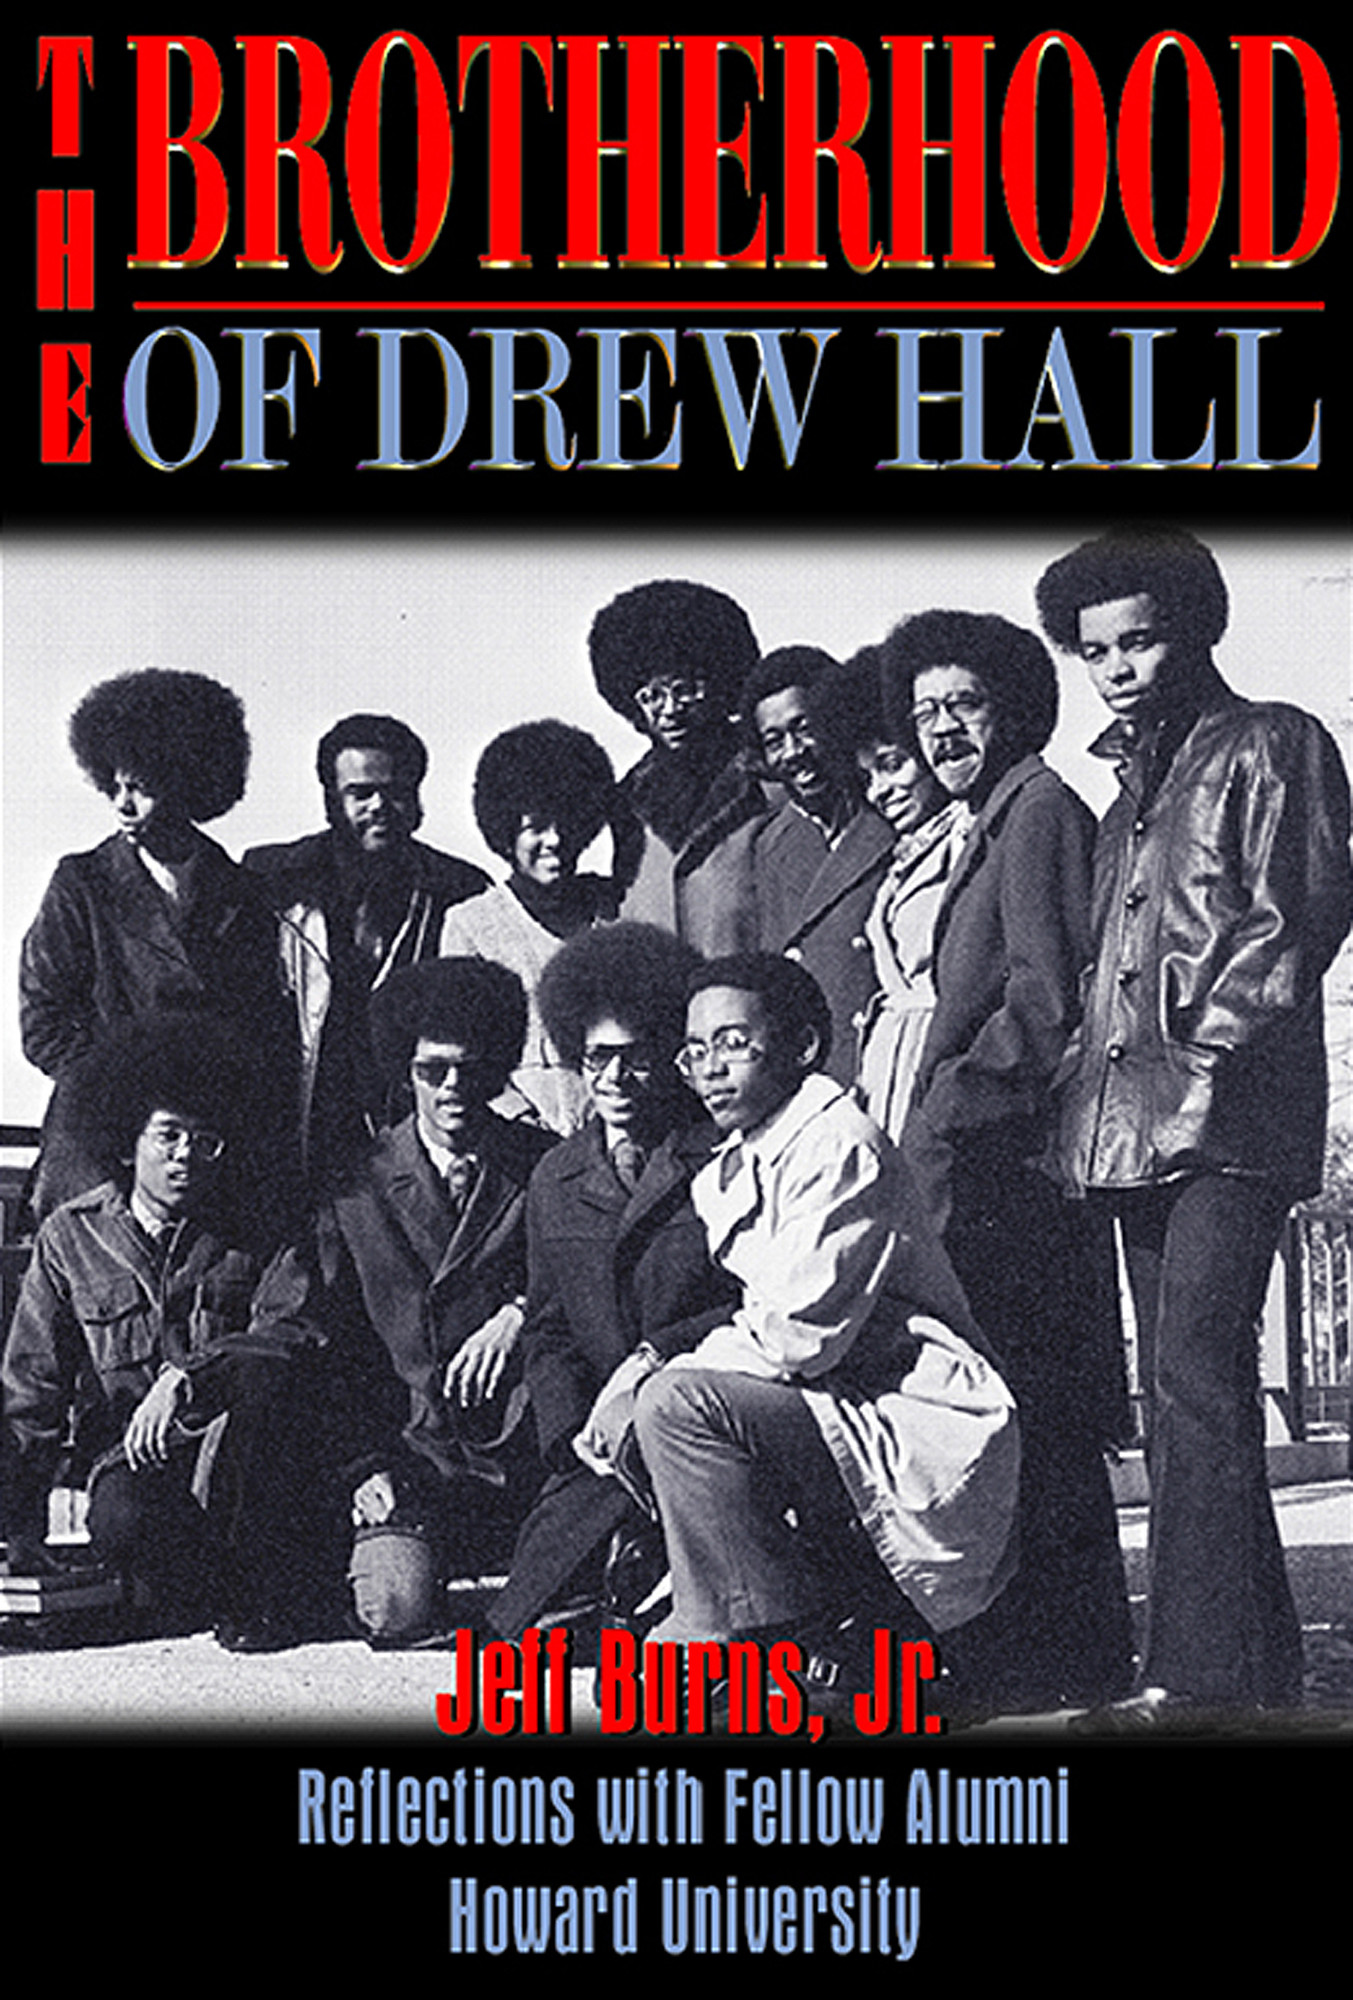 """The Brotherhood of Drew Hall"" relates the stories of many inspirational black leaders from Howard University are featured in Jeff Burns' book."